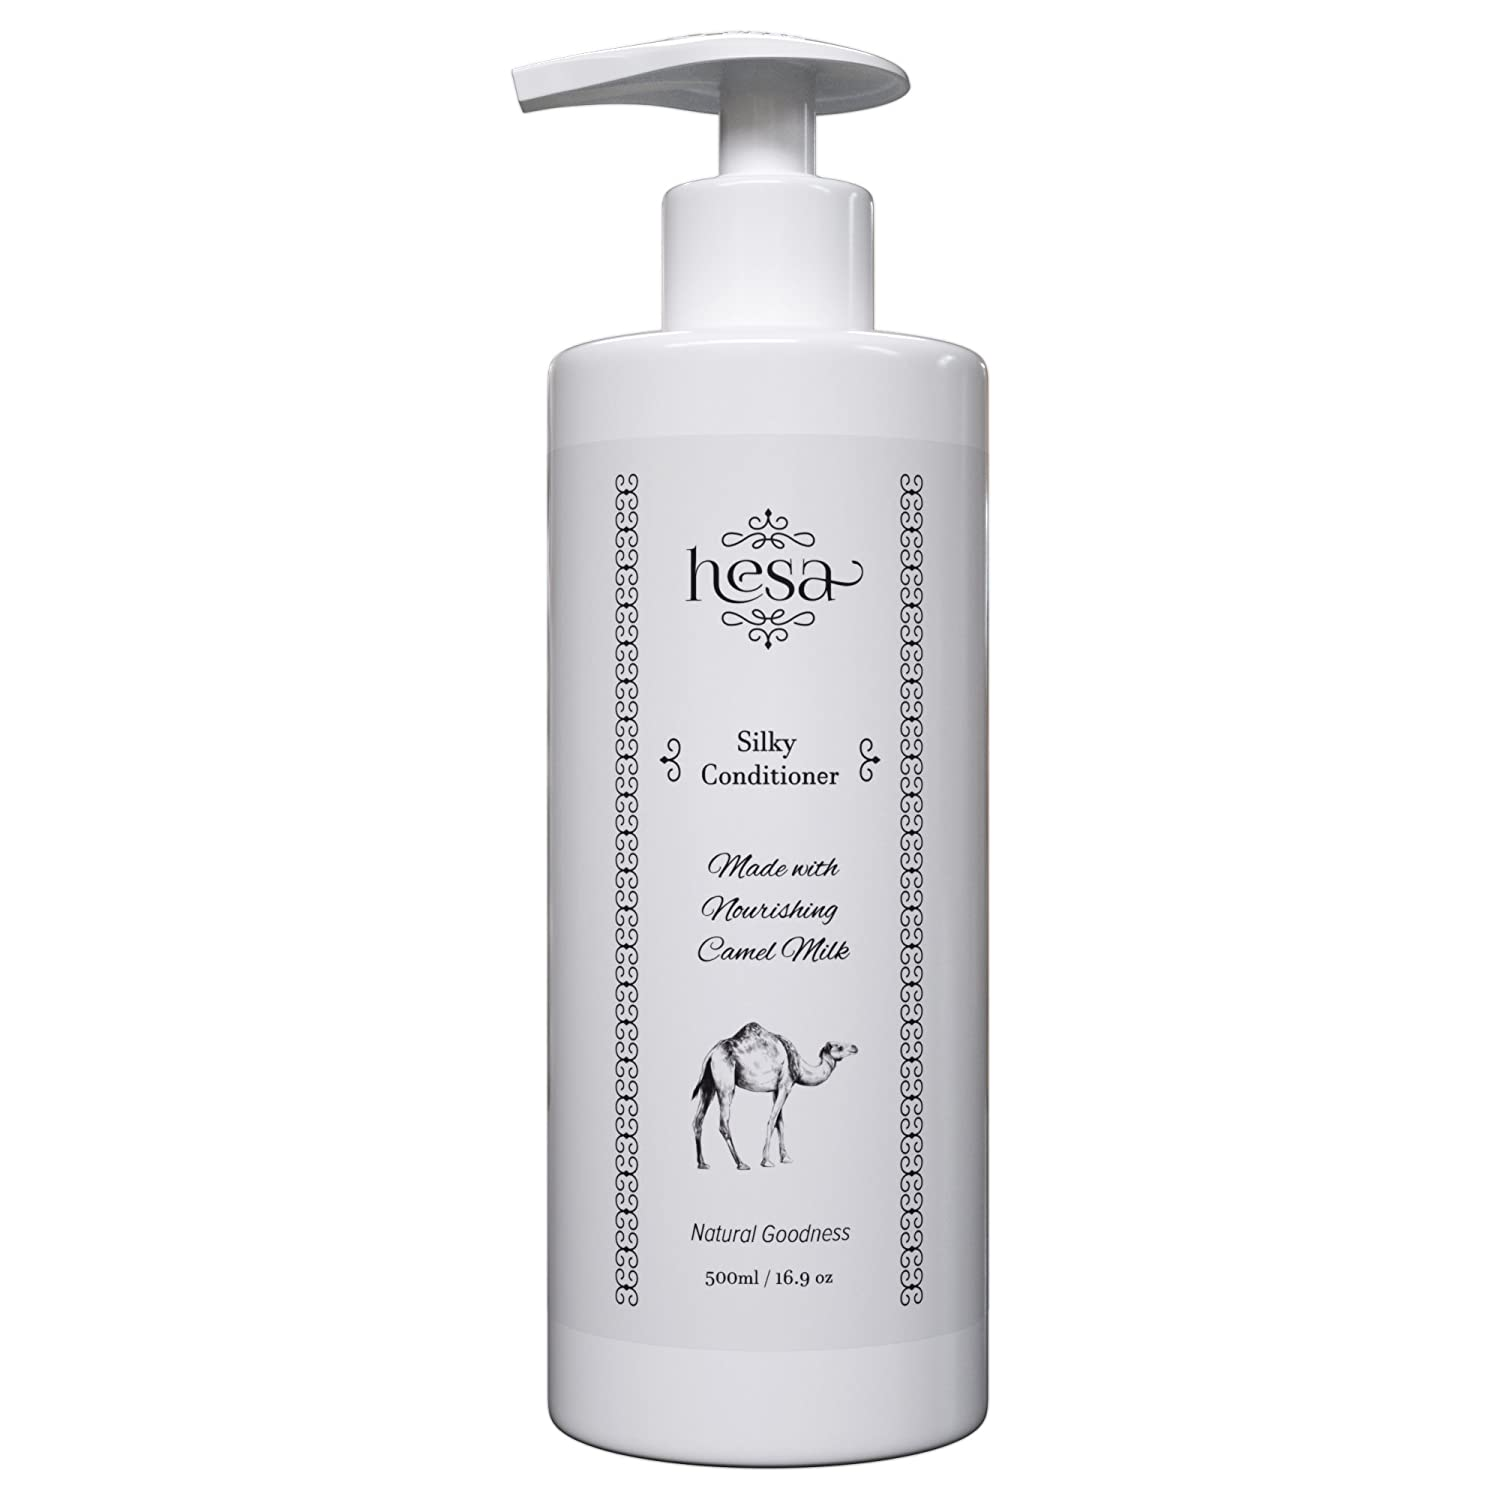 Natural Conditioner with Camel Milk & Argan Oil - Leave In Conditioner for Damaged, Colored & Dry Hair - Deep Conditioning Hair Treatment - Total Repair - Sulfate Free - Anti-Frizz. 500ml / 17.6 oz Hesa